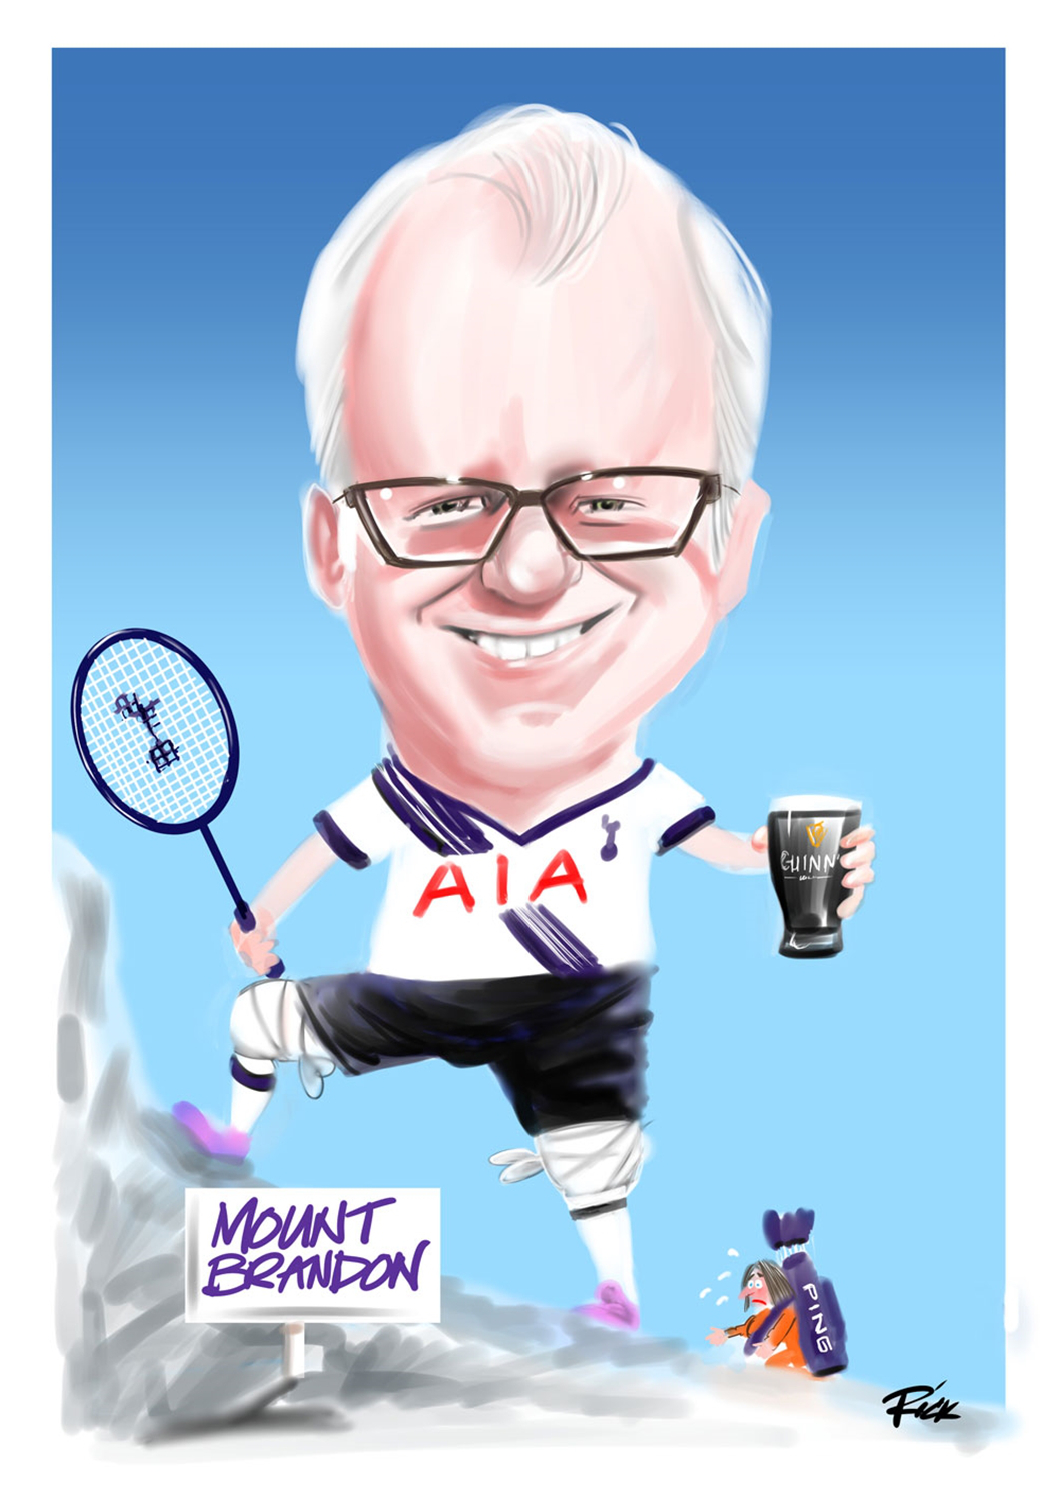 Full colour caricature of Spurs fan with badmington racquet and pint of Guiness